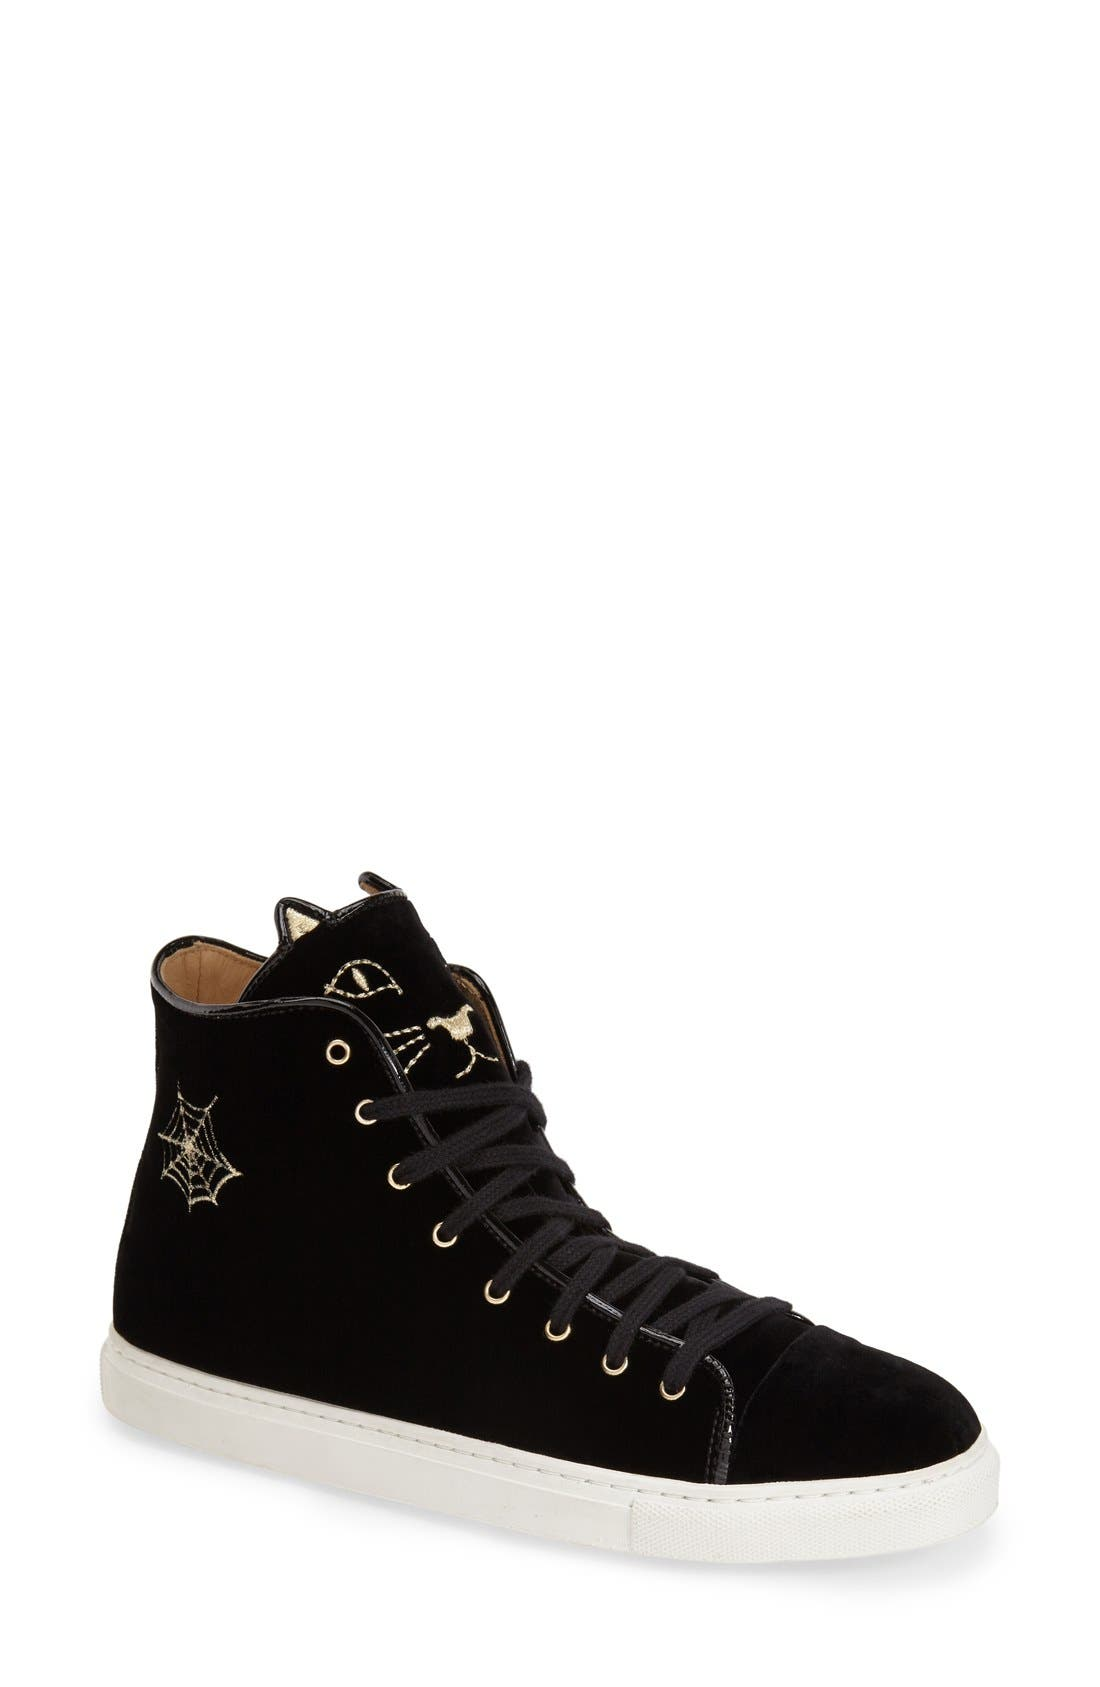 Alternate Image 1 Selected - Charlotte Olympia 'Purrrfect' High Top Sneaker (Women)